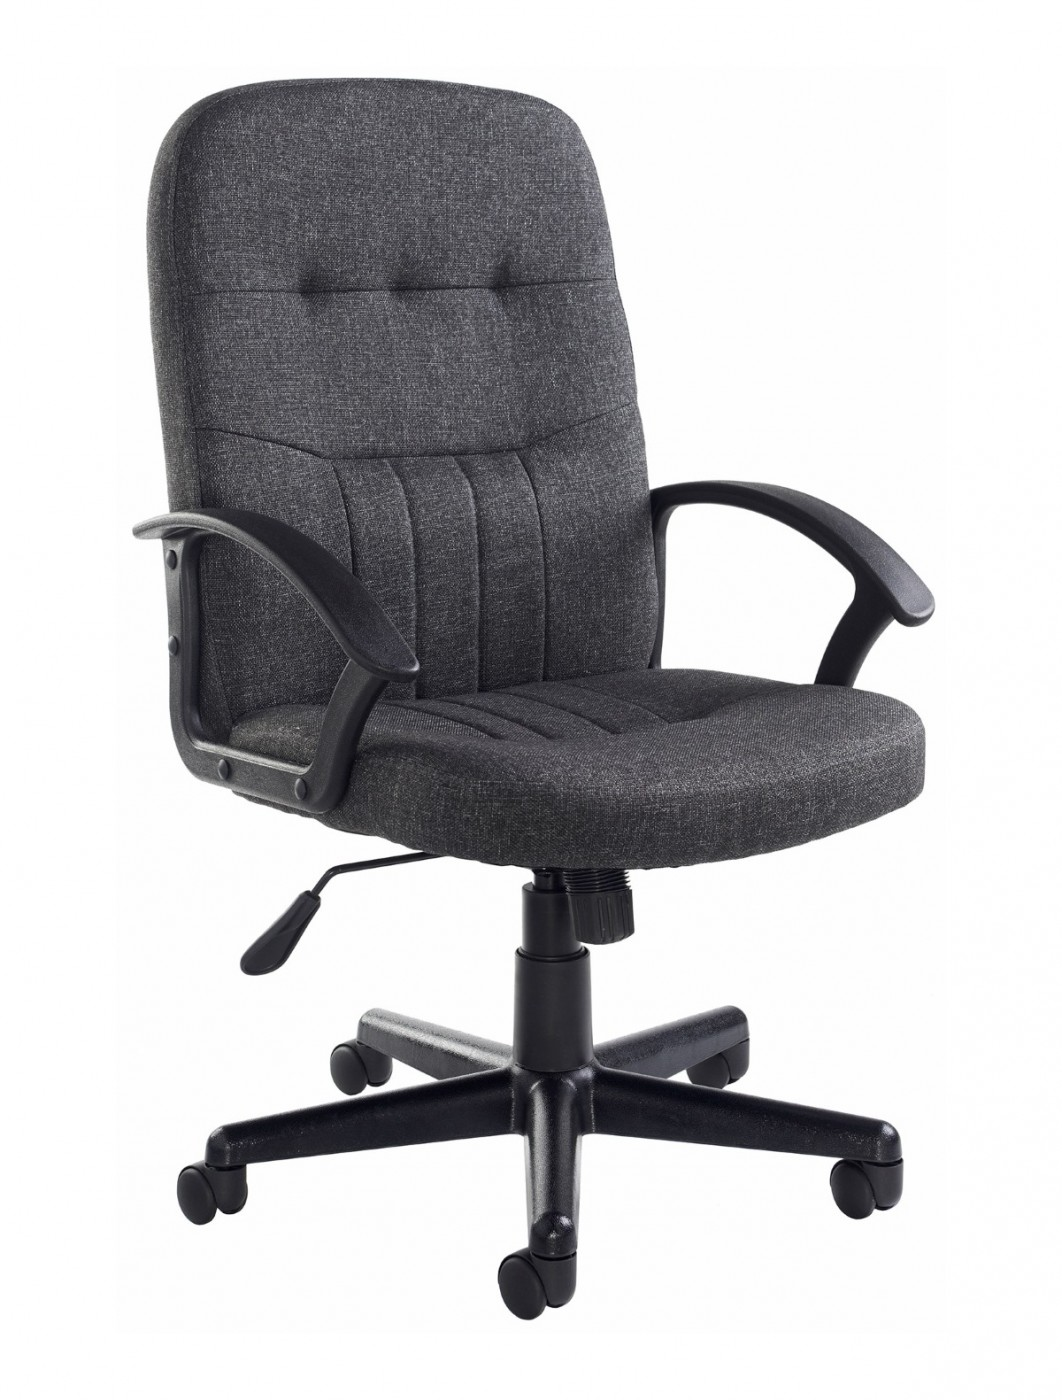 Cloth Covered Office Chairs Office Chairs Cavalier Charcoal Office Chair Cav300t1 C